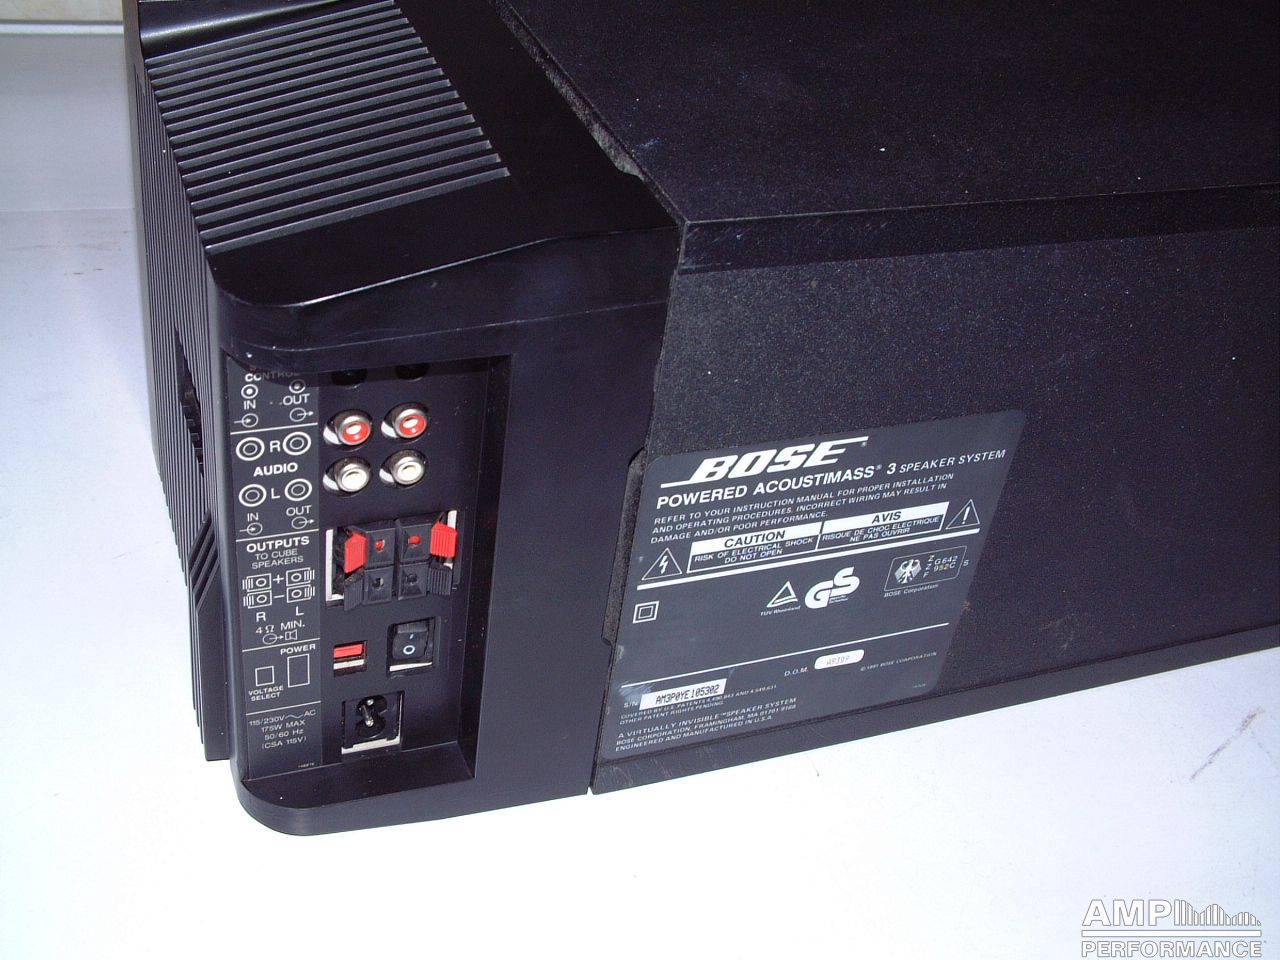 Bose Powered Acoustimass 3 Serie 2 Amp Performance